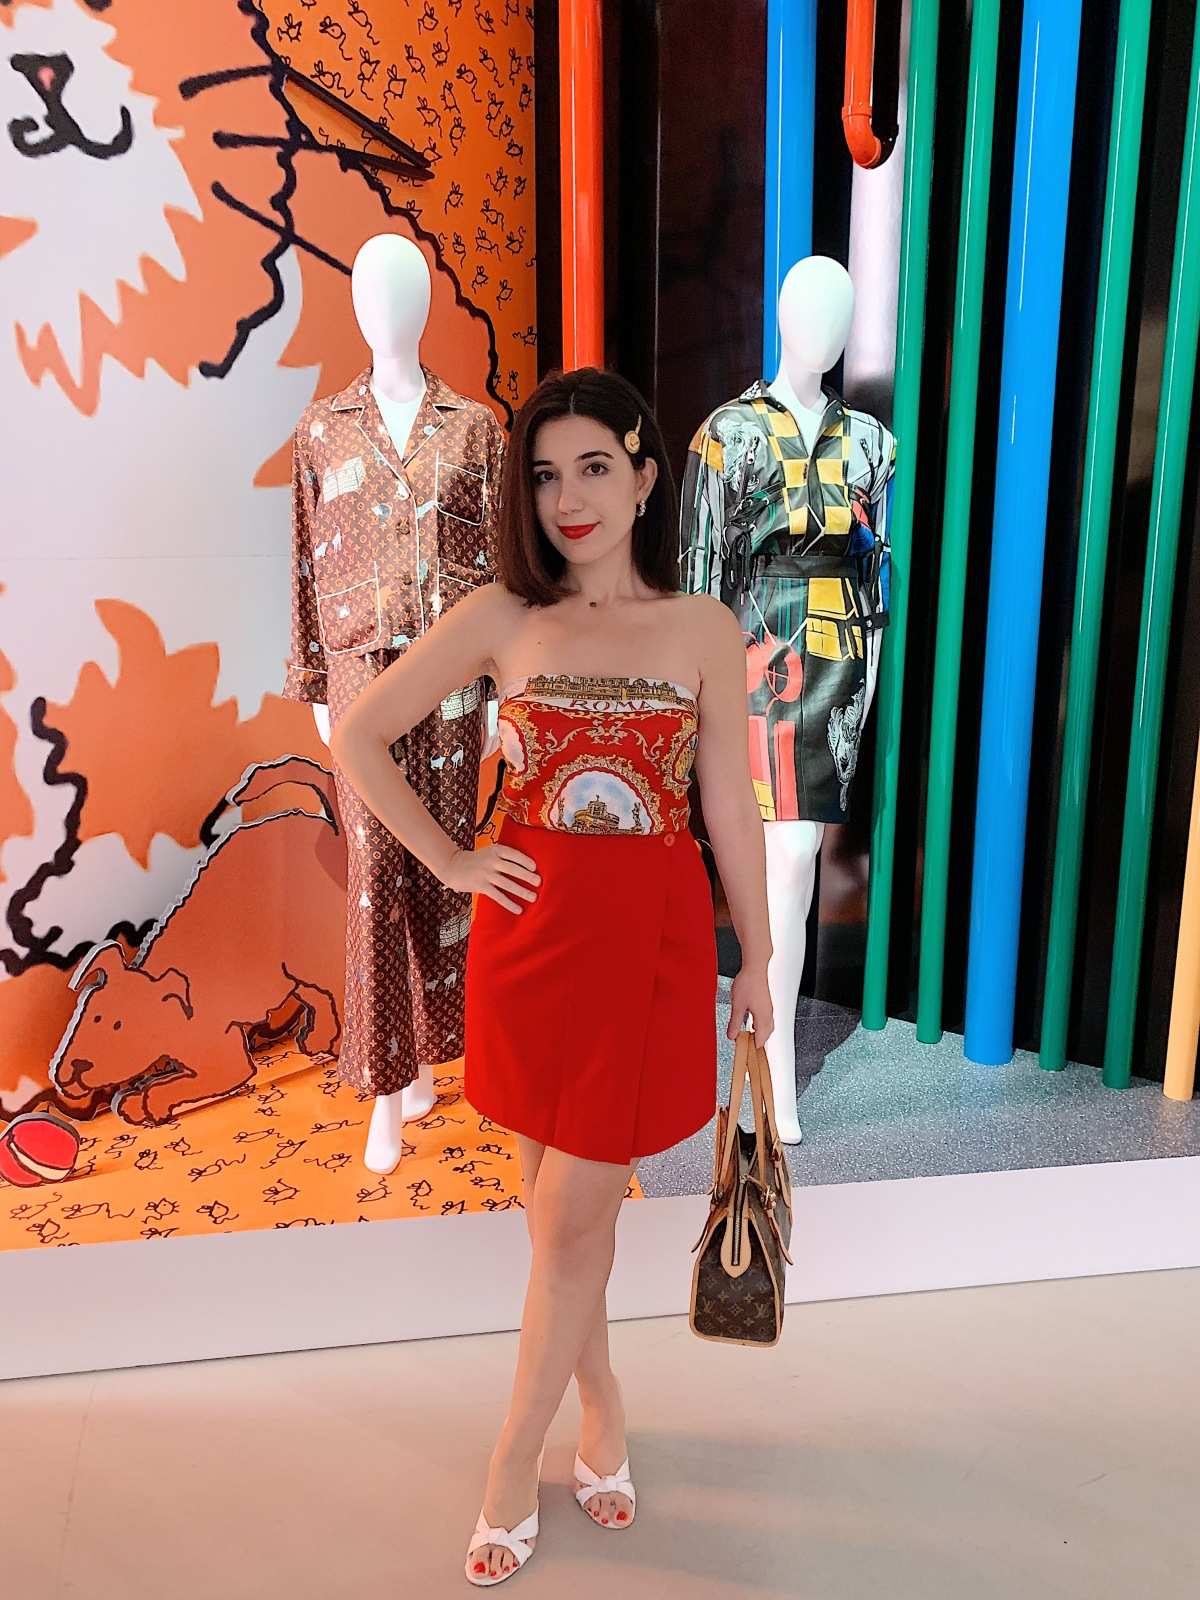 Louis Vuitton X, LVX, Louis Vuitton, Beverly Hills, Louis Vuitton Beverly Hills, lookbook, Los Angeles, LA fashion blogger, look of the day, ootd, outfit of the day, summer fashion, scarf top, Versace hair clip, red skirt, short hair, red lips, vintage fashion